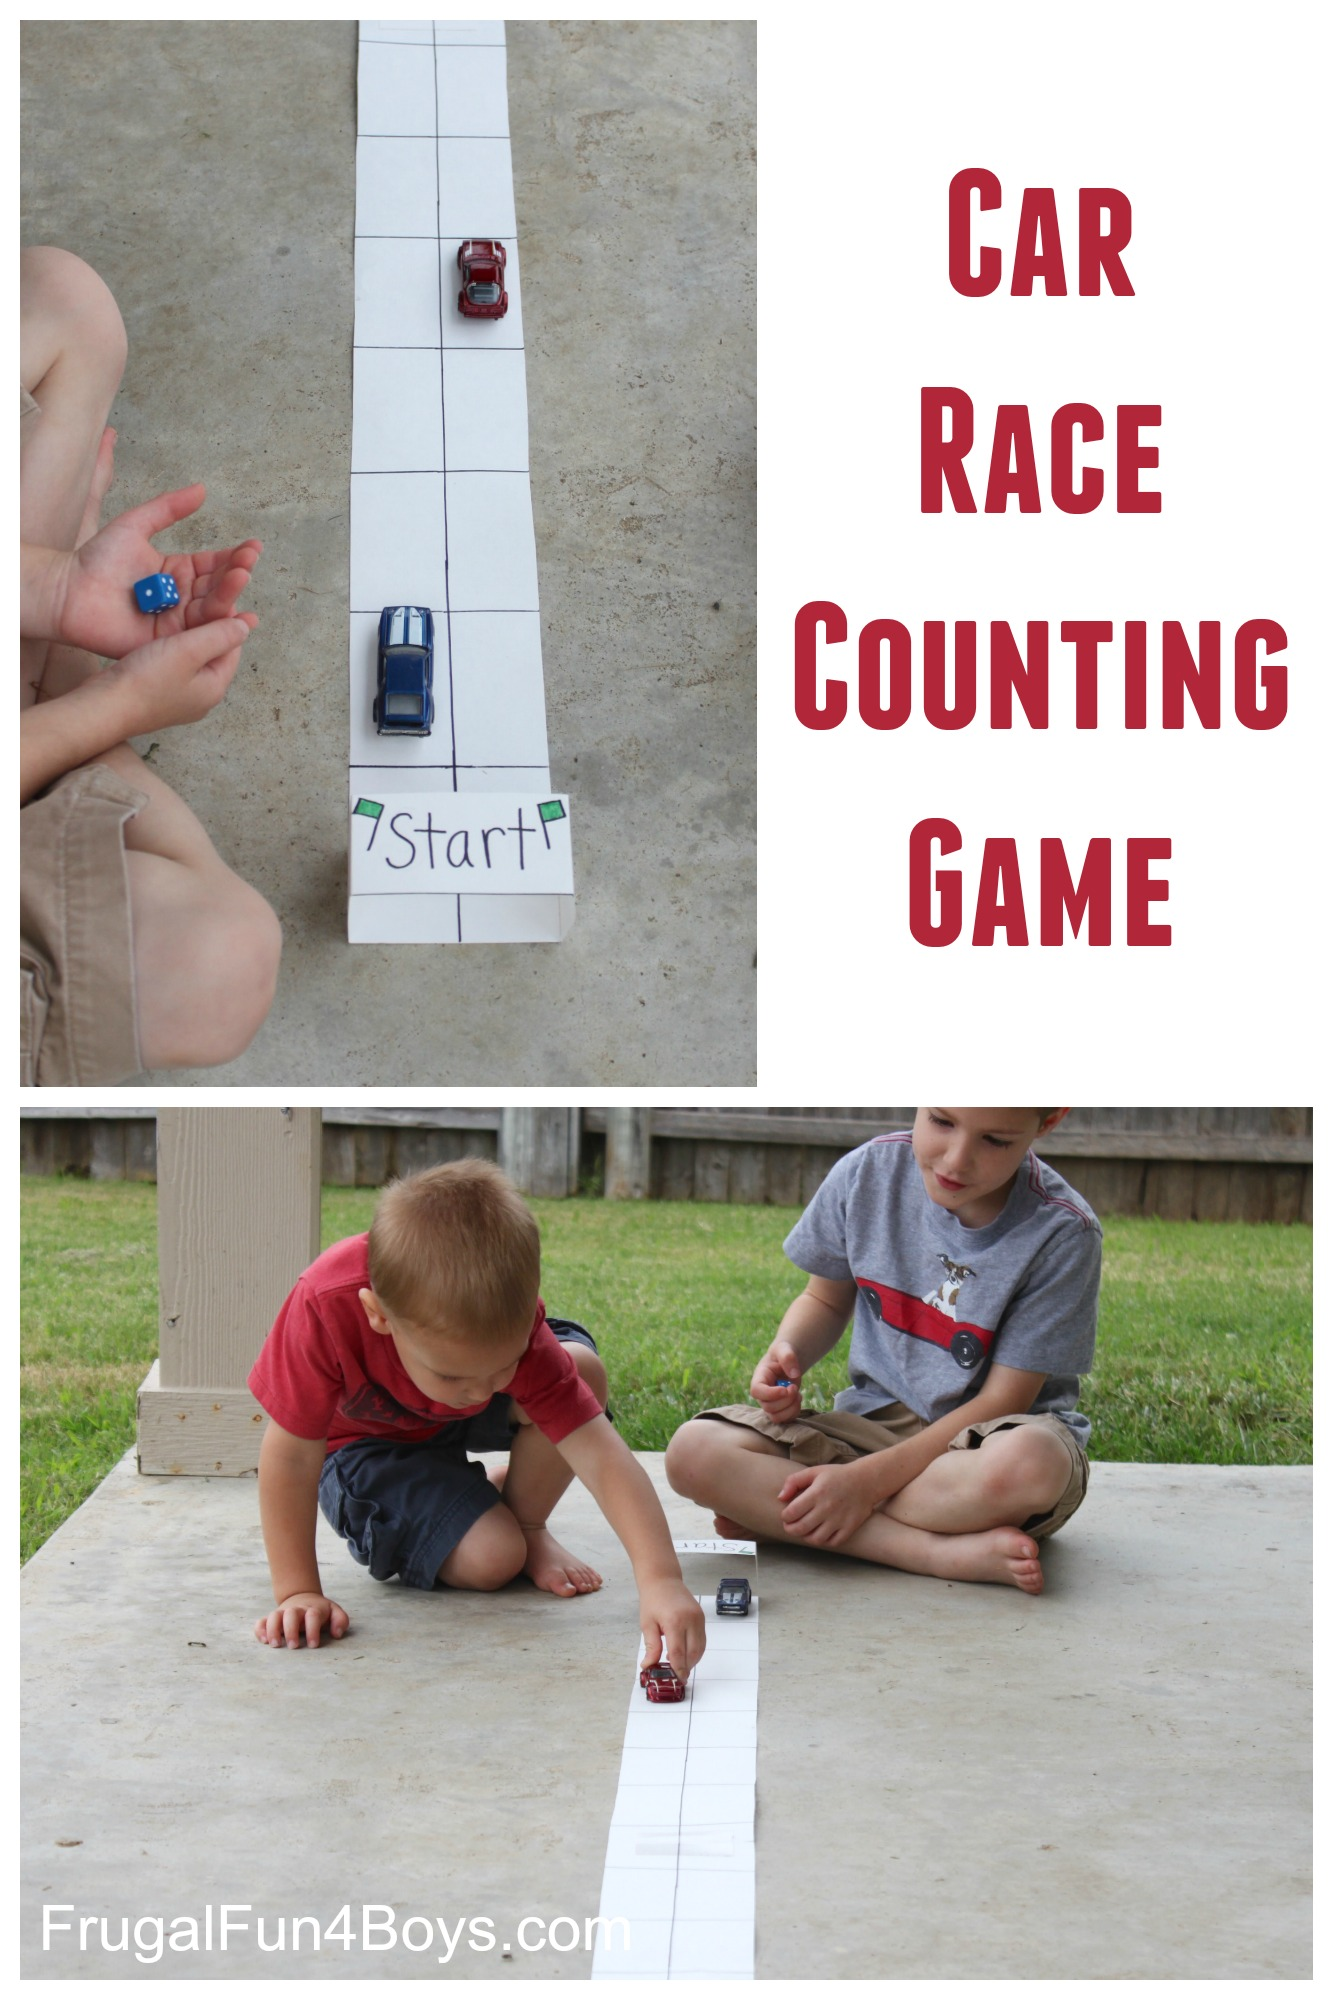 Car Race Counting Game